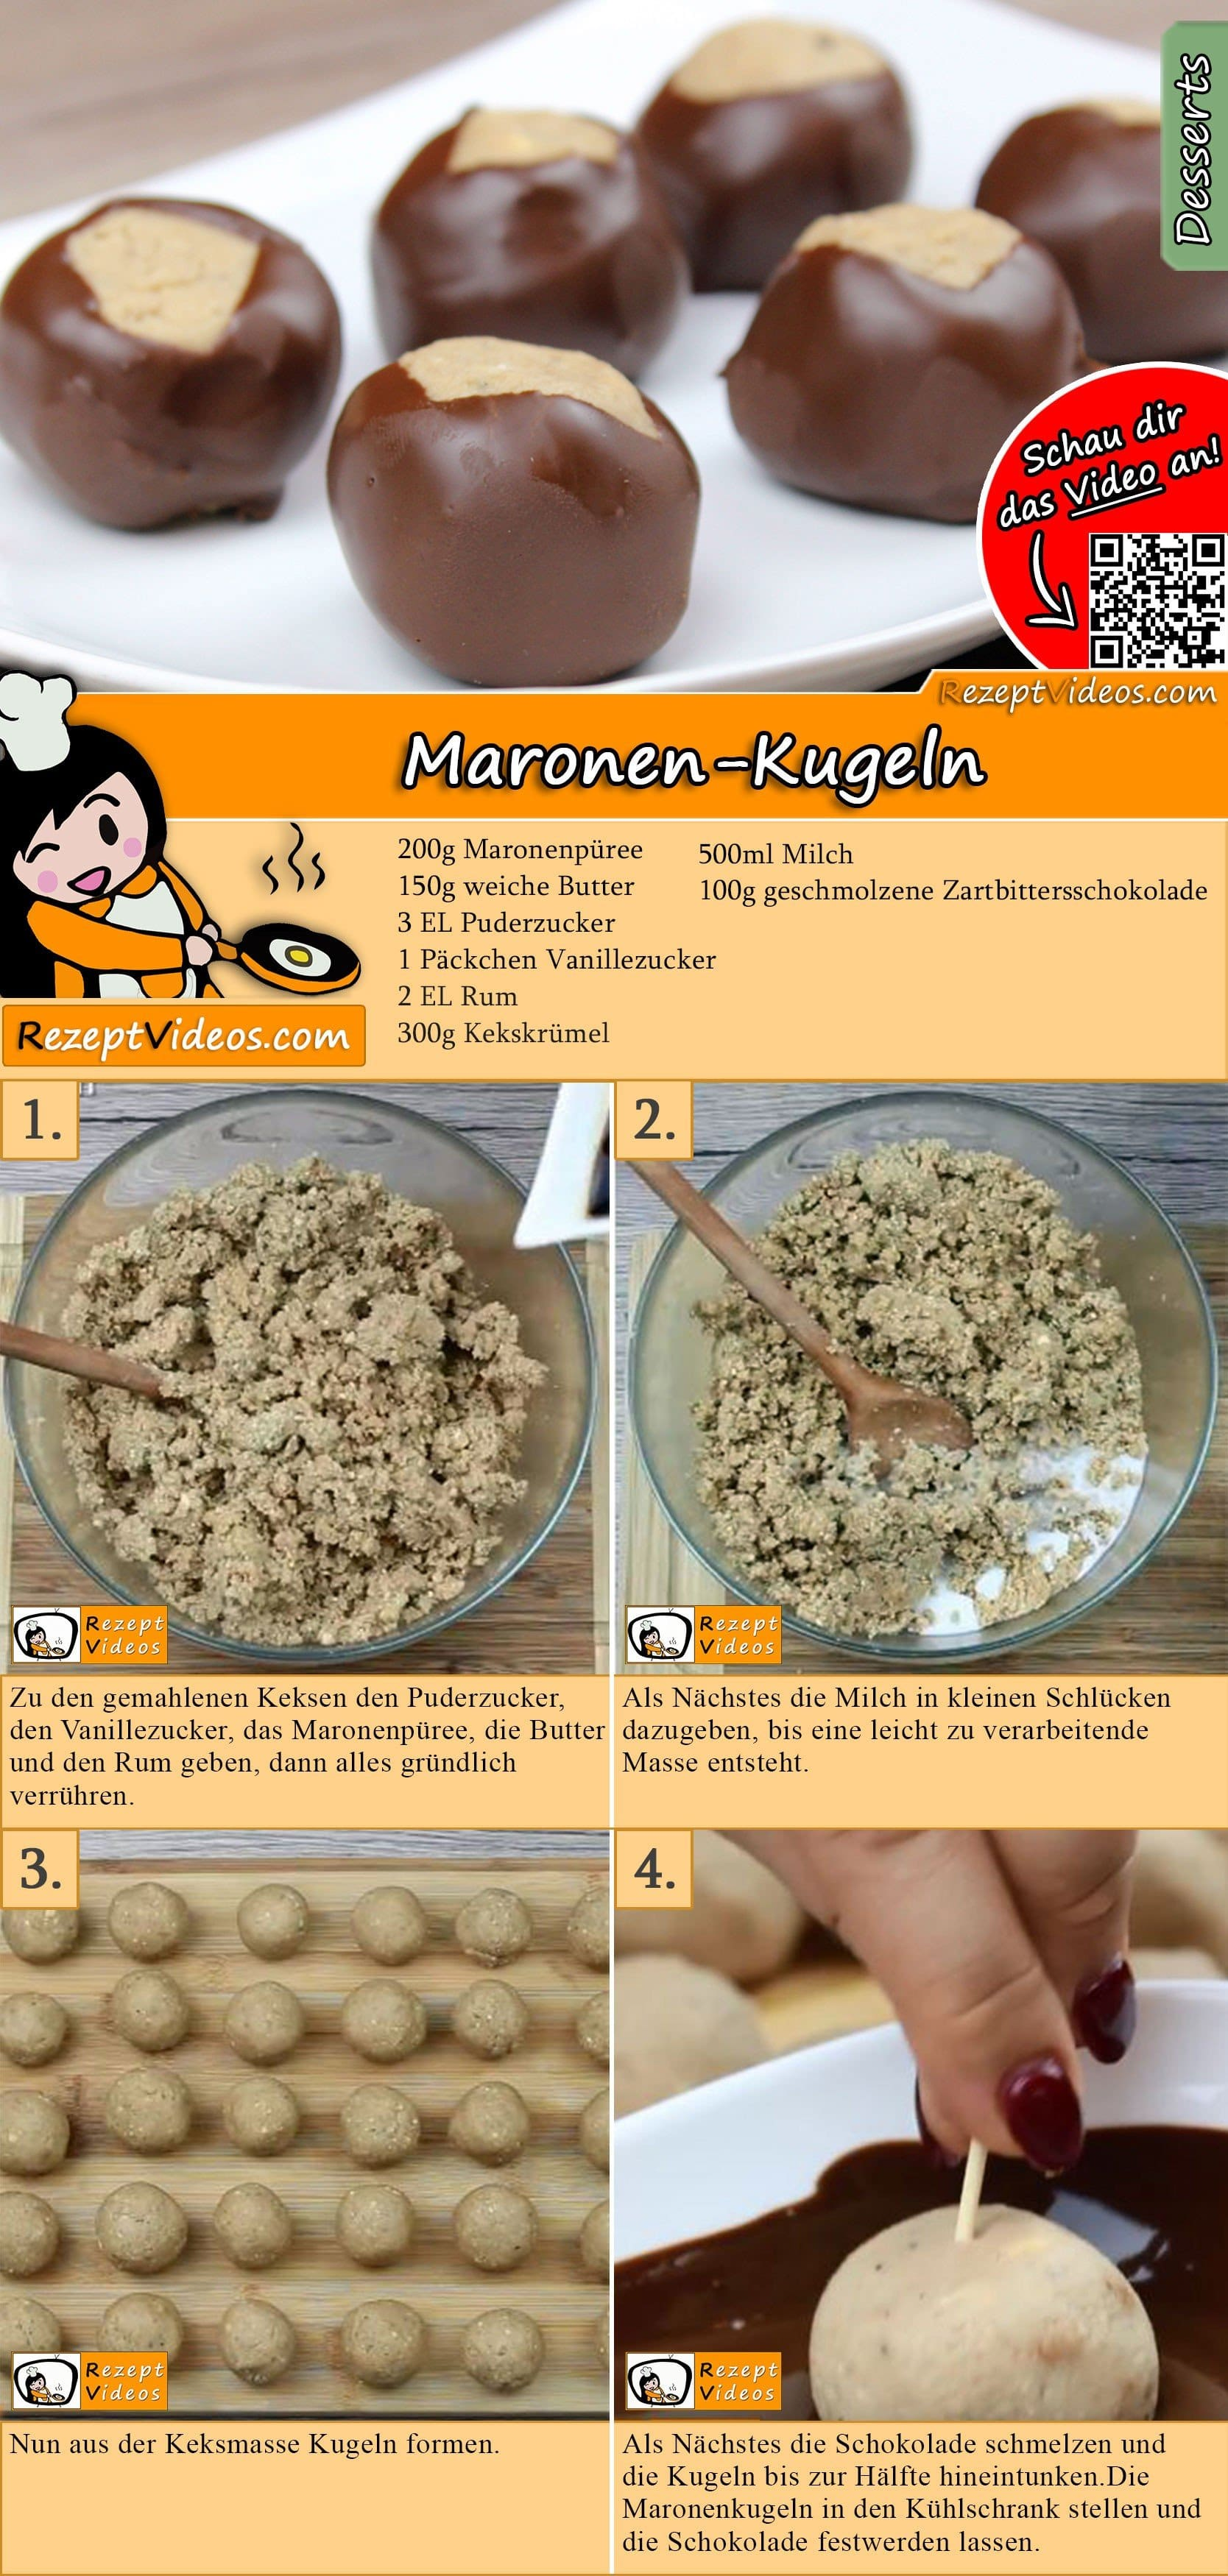 Maronen-Kugeln Rezept with Video